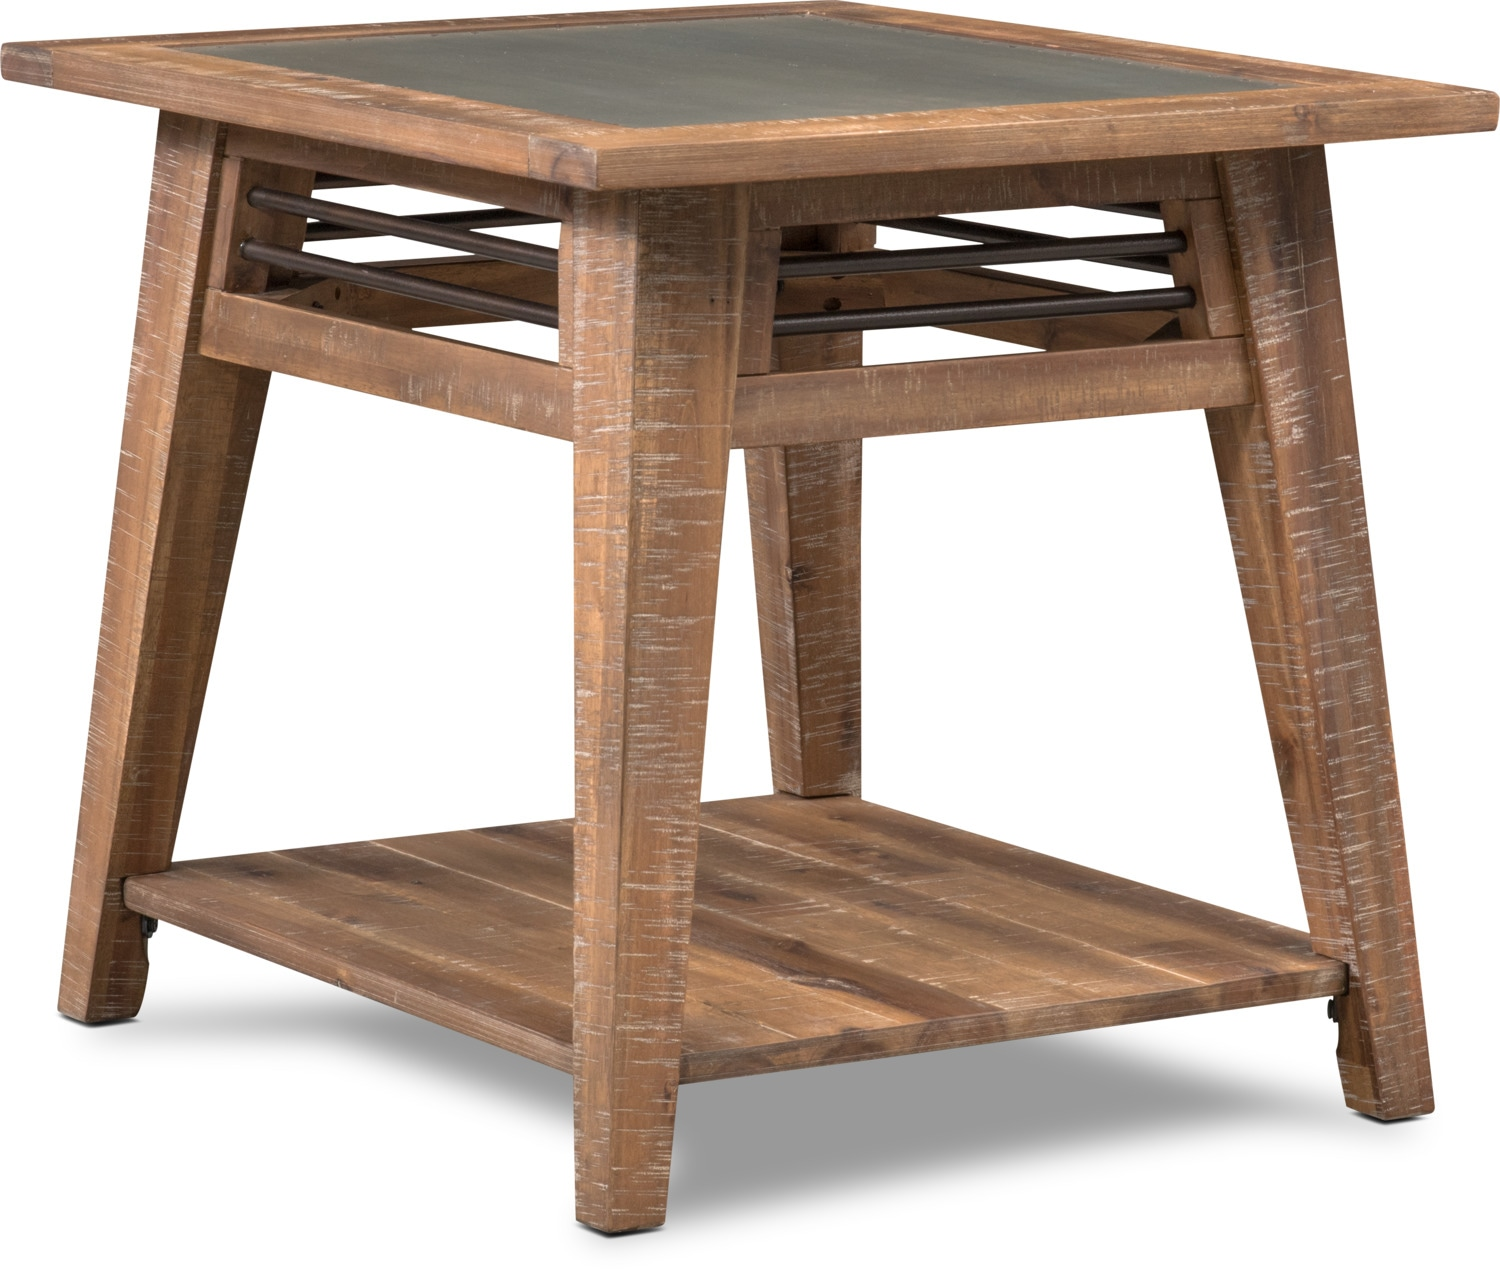 colt end table distressed natrual value city furniture and look tables accent occasional chairside ashley stone coffee sauder manchester black high gloss console best color